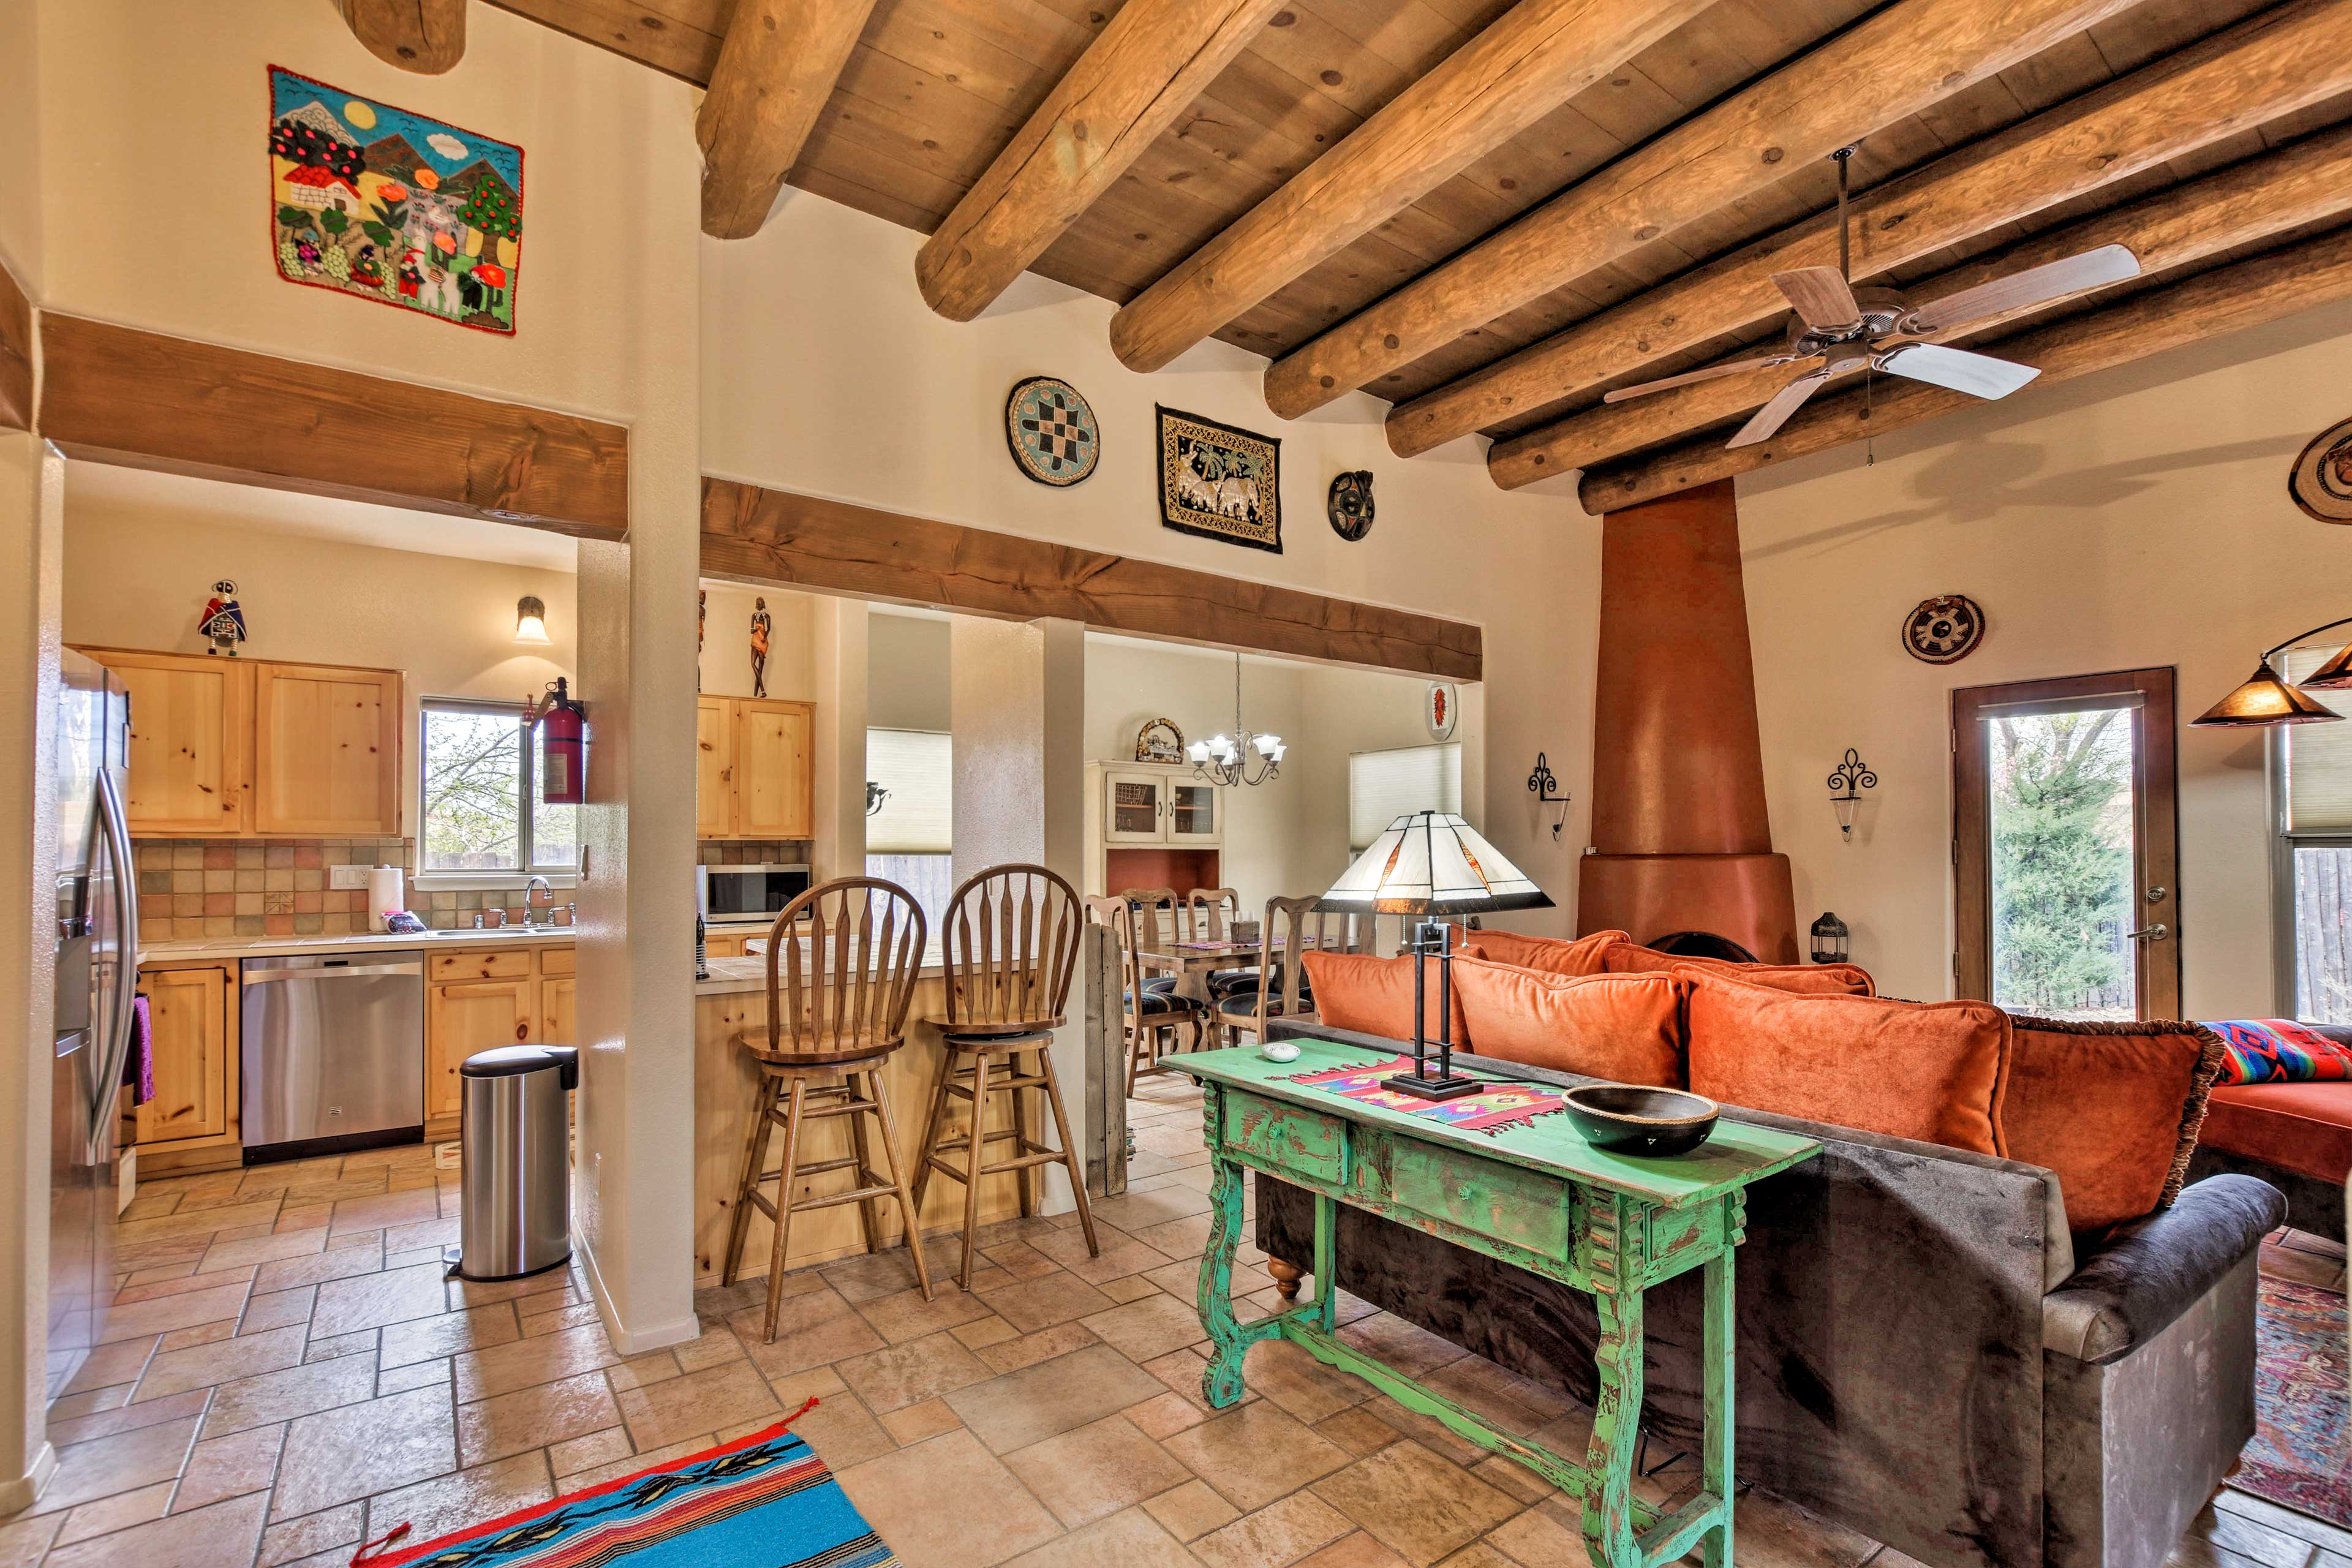 Book this adobe-style vacation rental house for your Santa Fe escape.